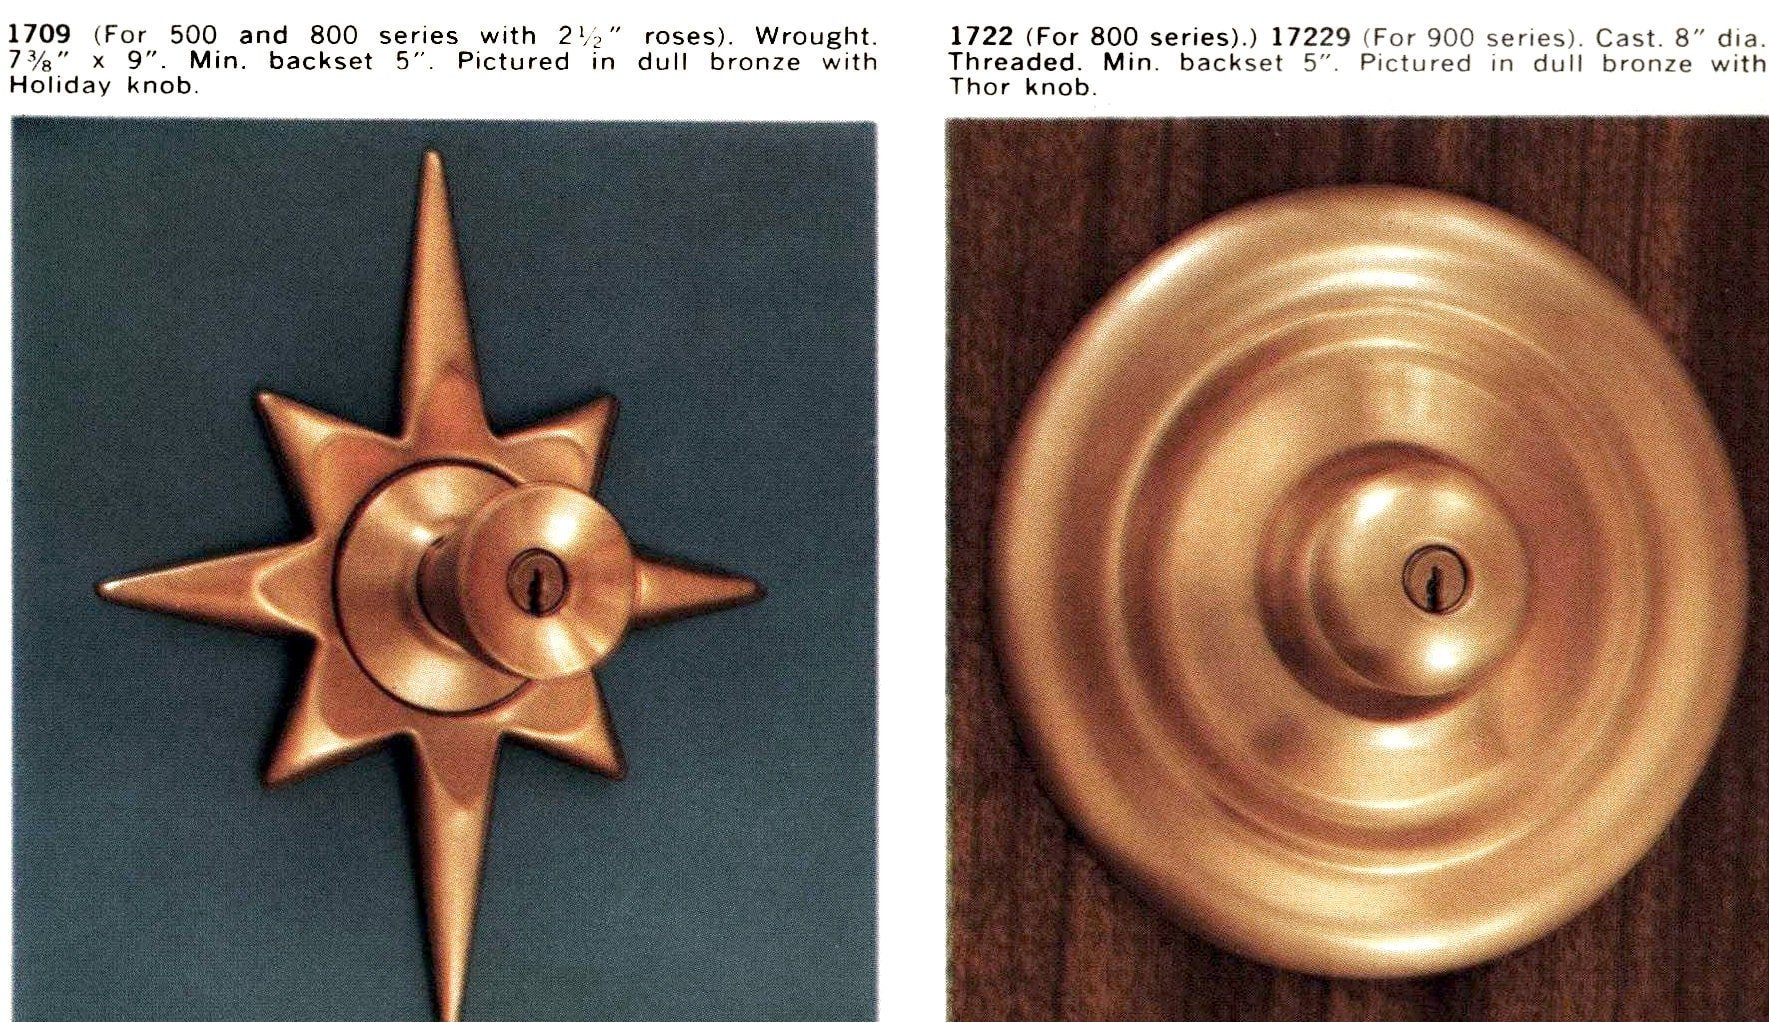 Vintage mid-century modern doorknobs and locks from 1959 (6)